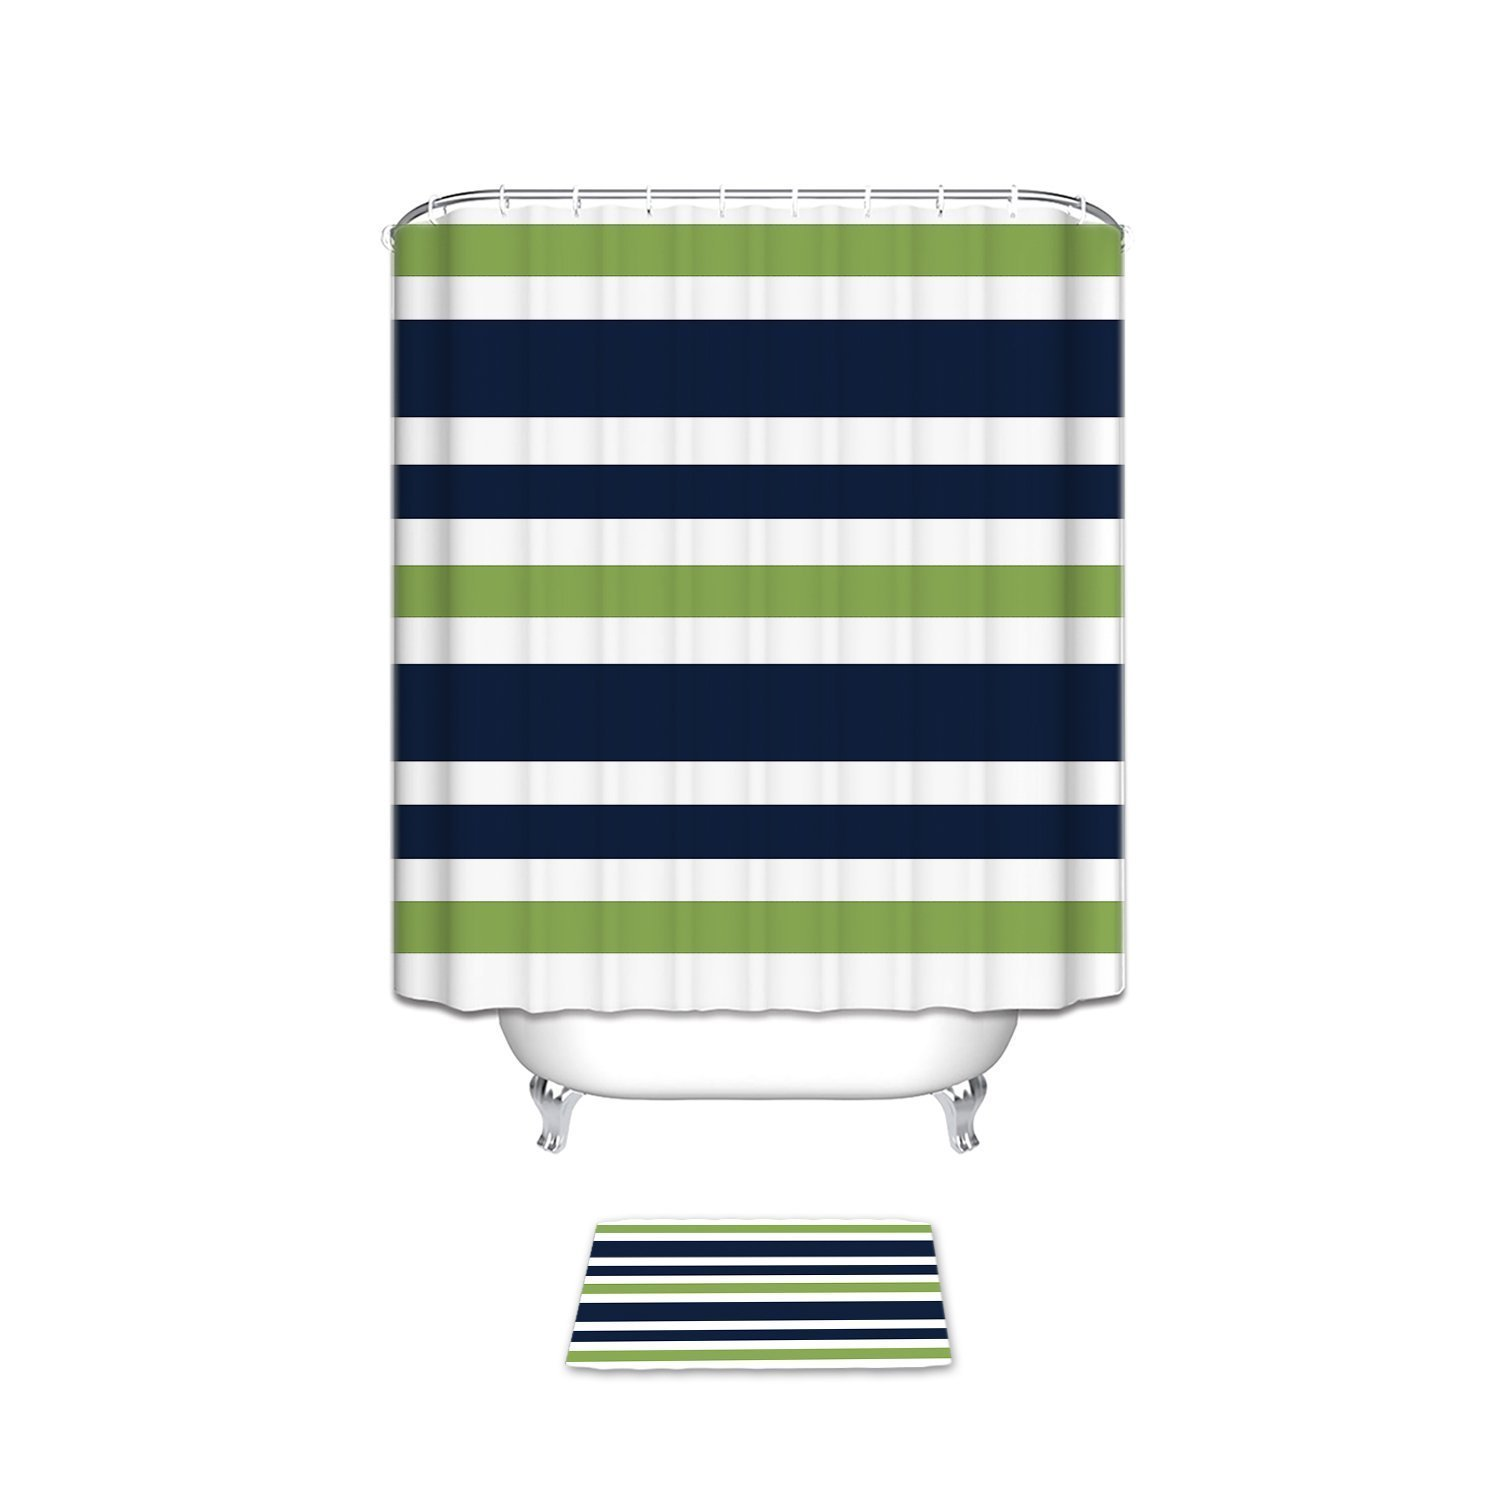 Us 11 19 30 Off Memory Home Navy Blue Lime Green And White Bathroom Waterproof Polyester Fabric Bath Stripes Shower Curtain Sets With Mats Rugs In